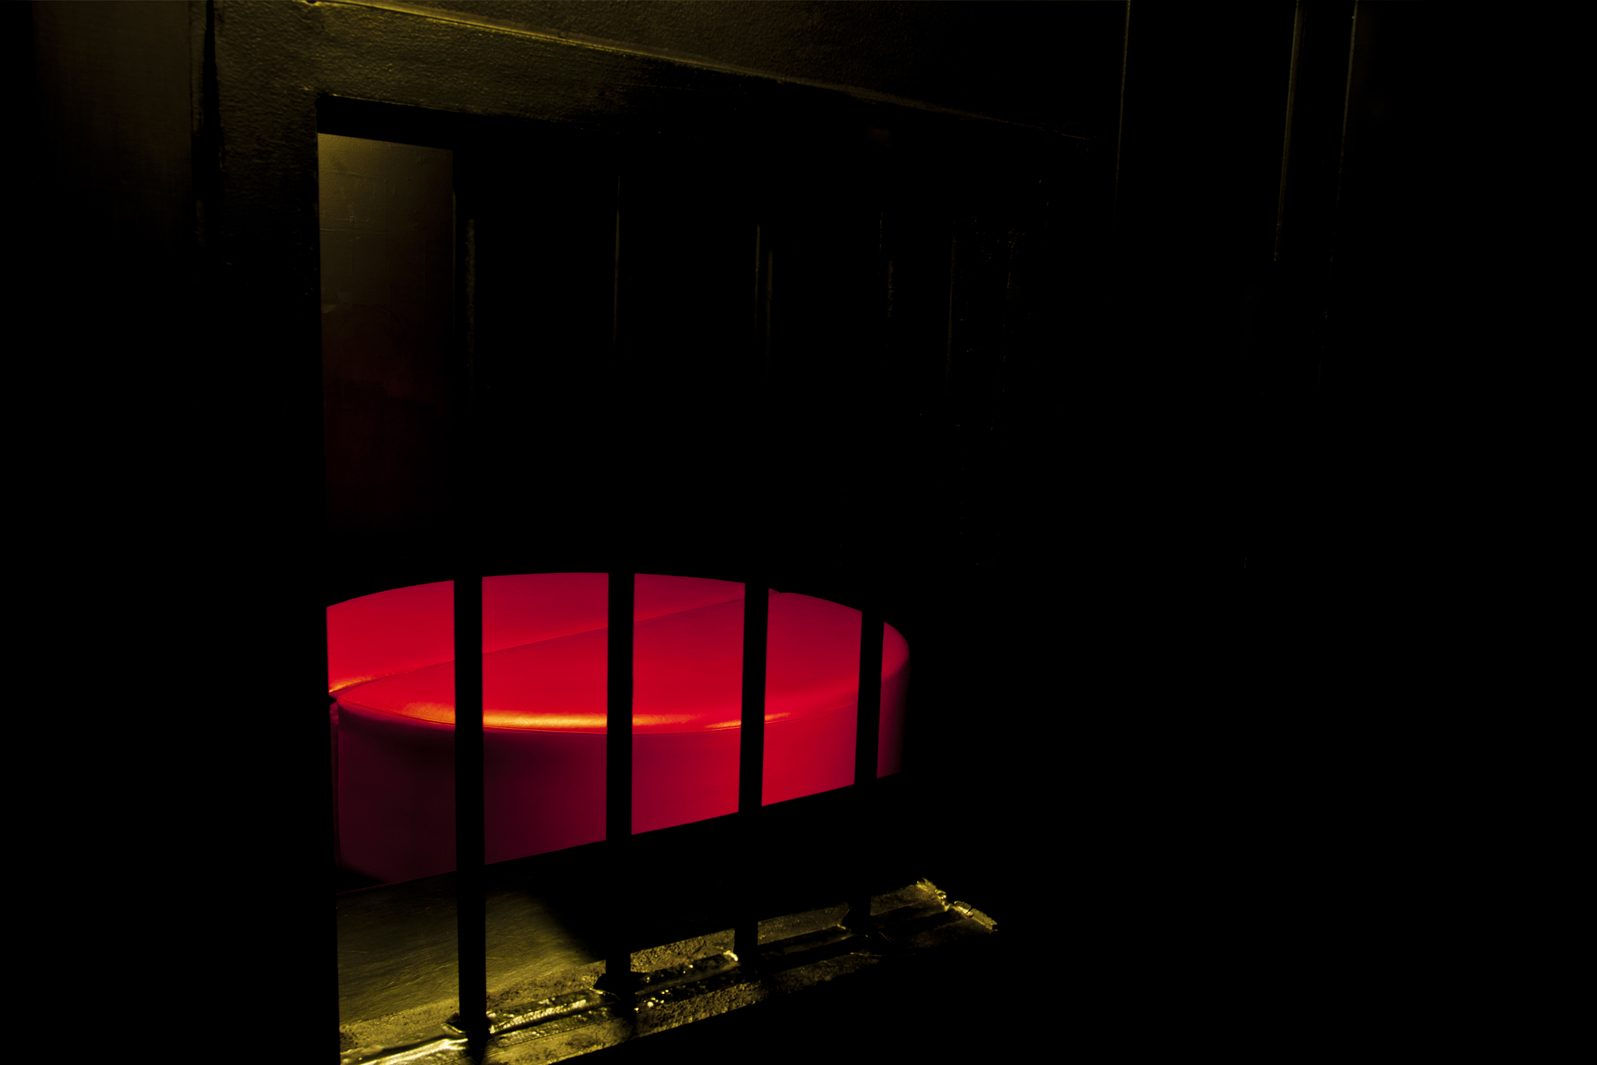 Sexy circular bed in the dark room.